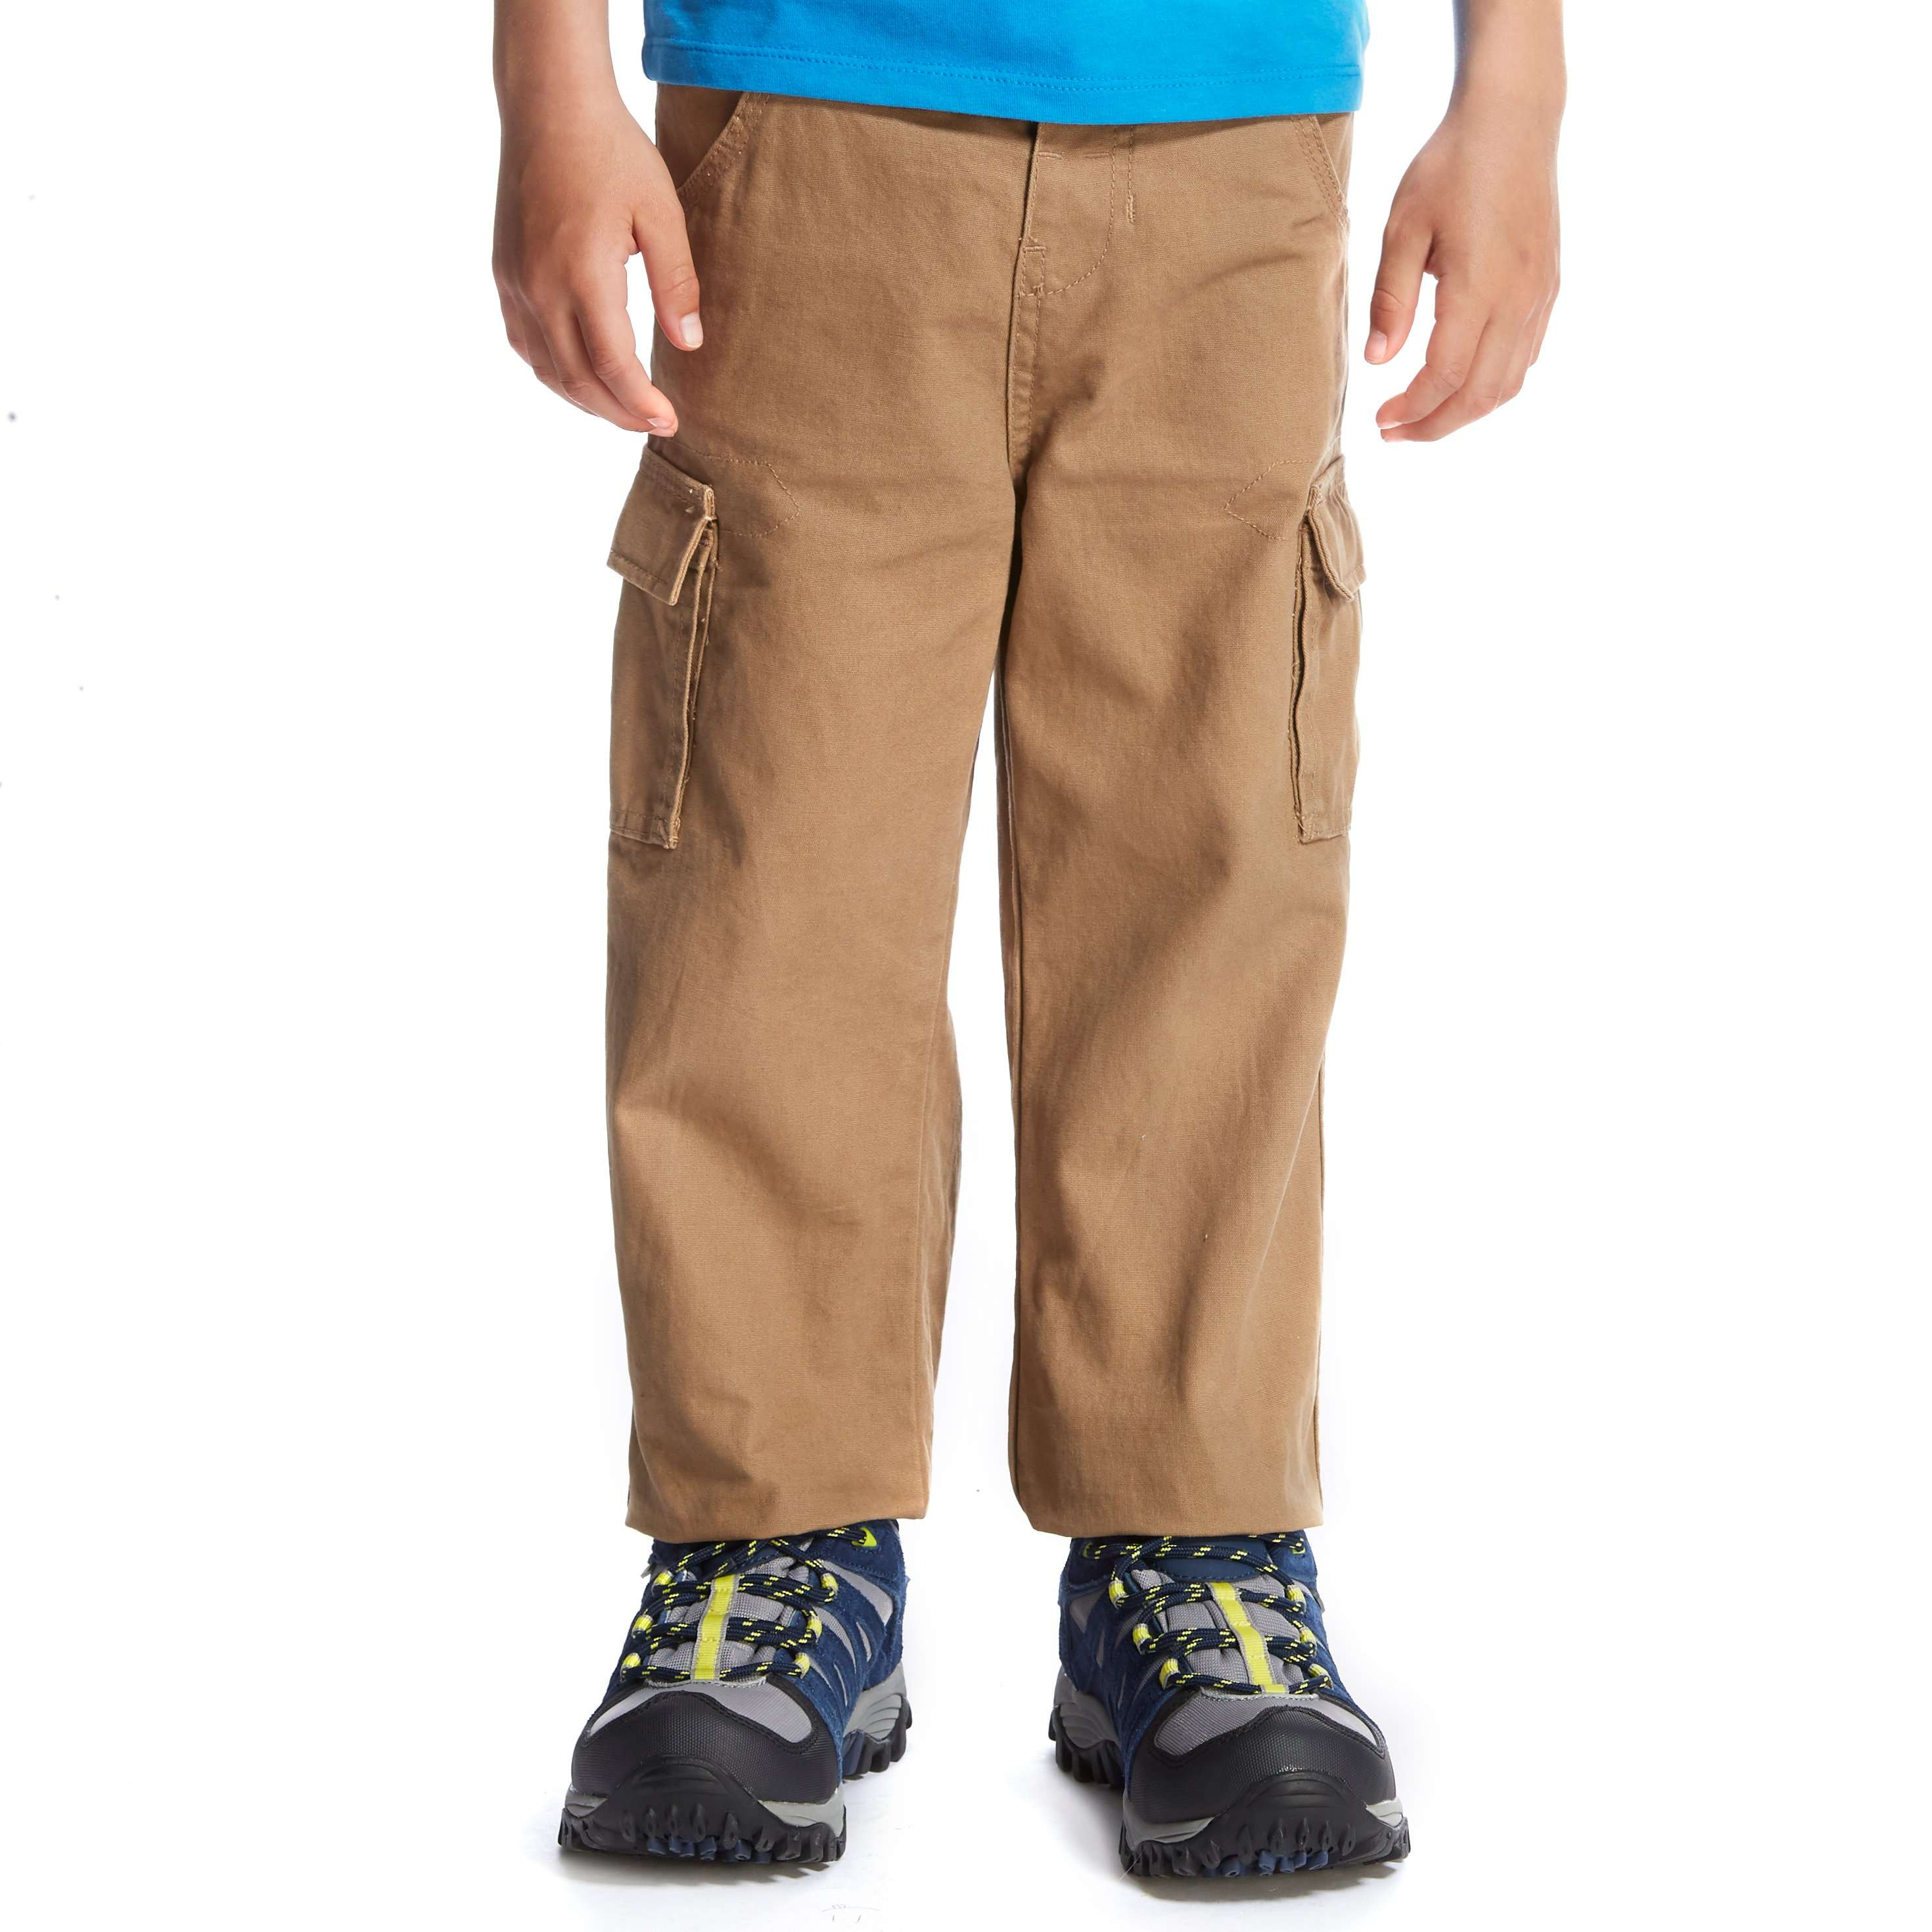 PETER STORM Kids' Cargo Trousers